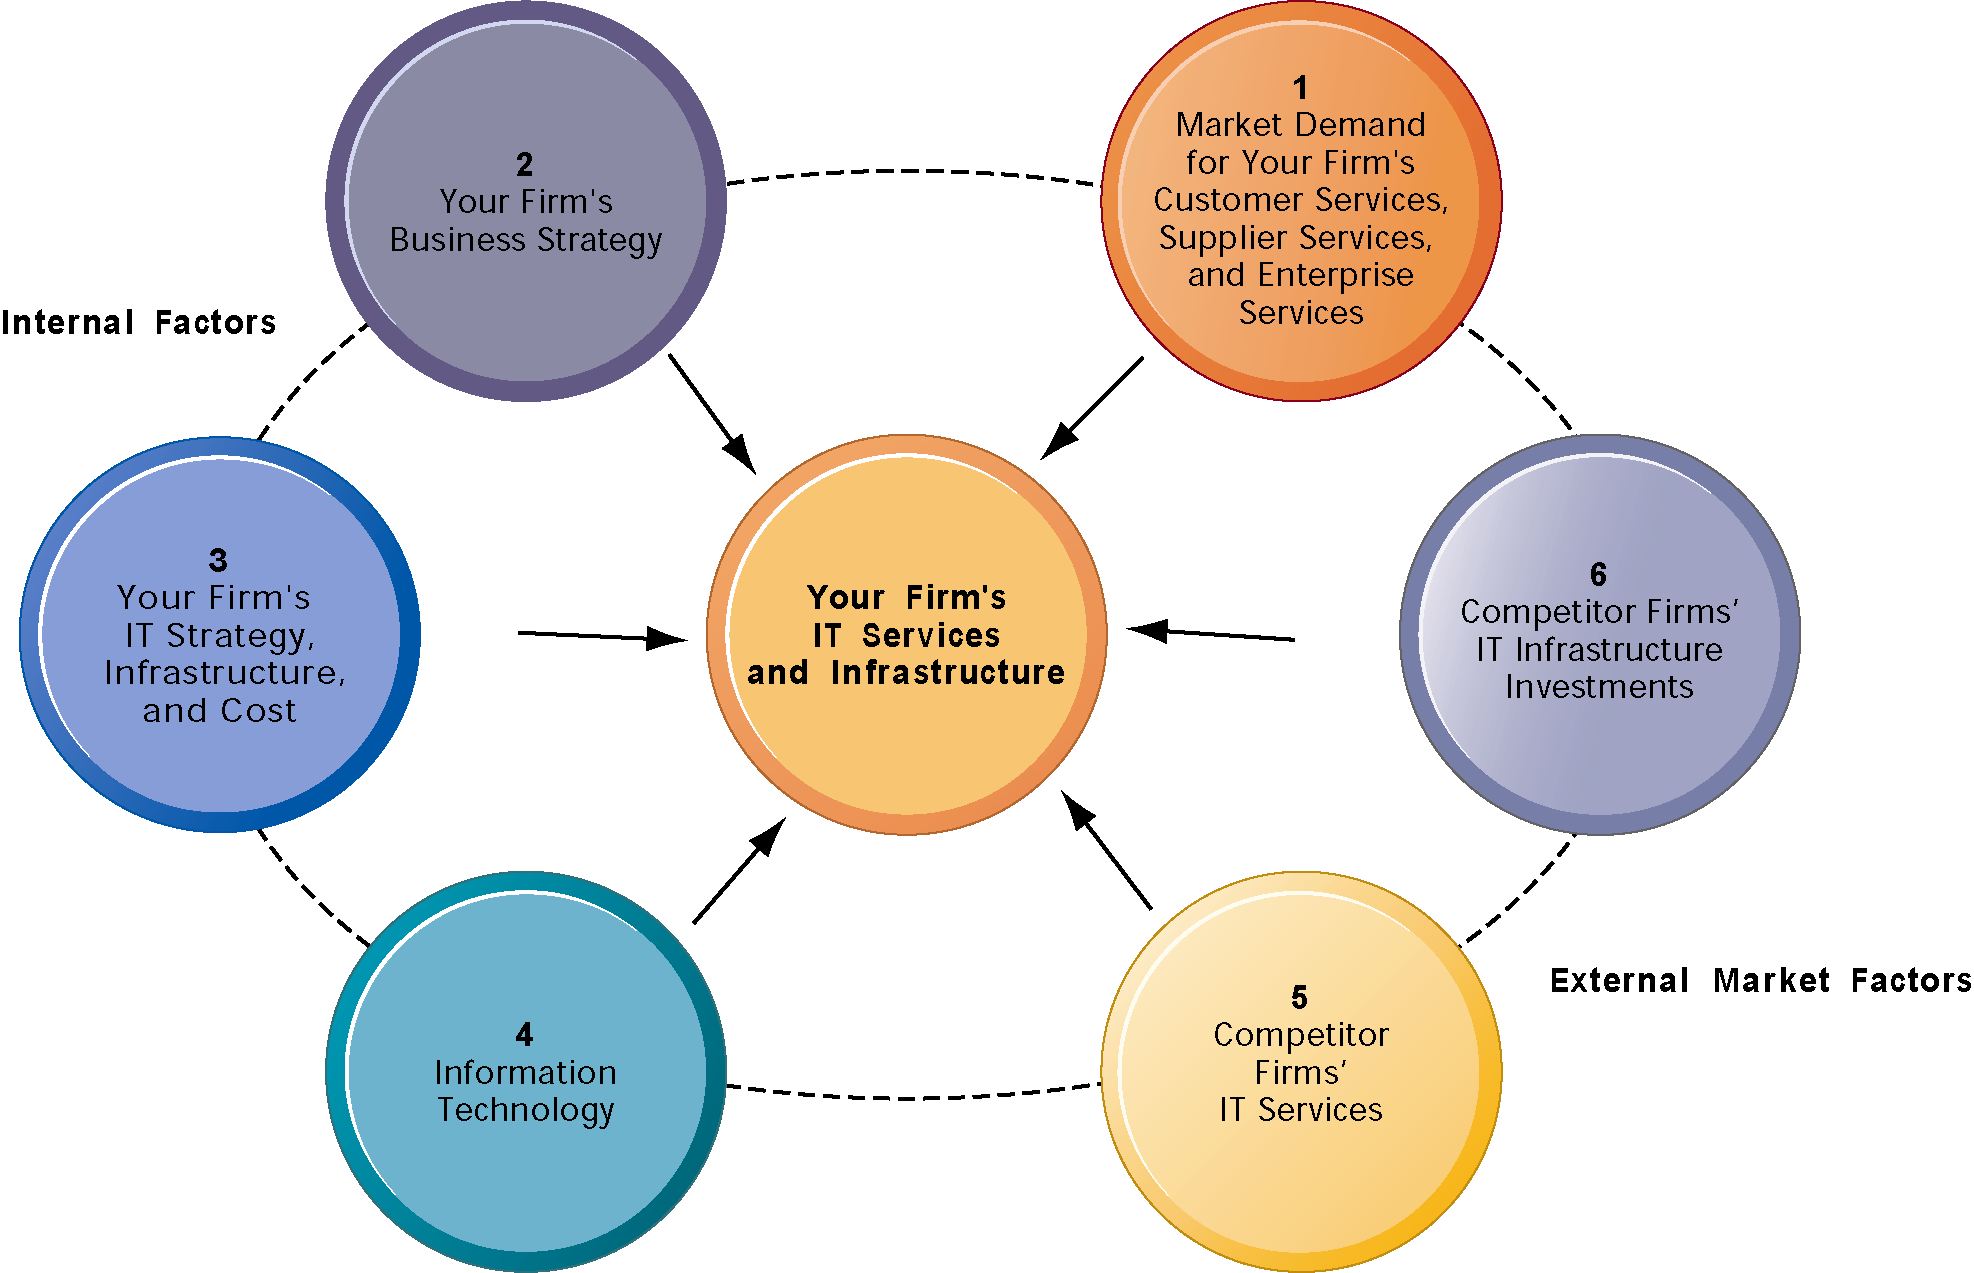 Management Issues Competitive Forces Model for IT Infrastructure There are six factors you can